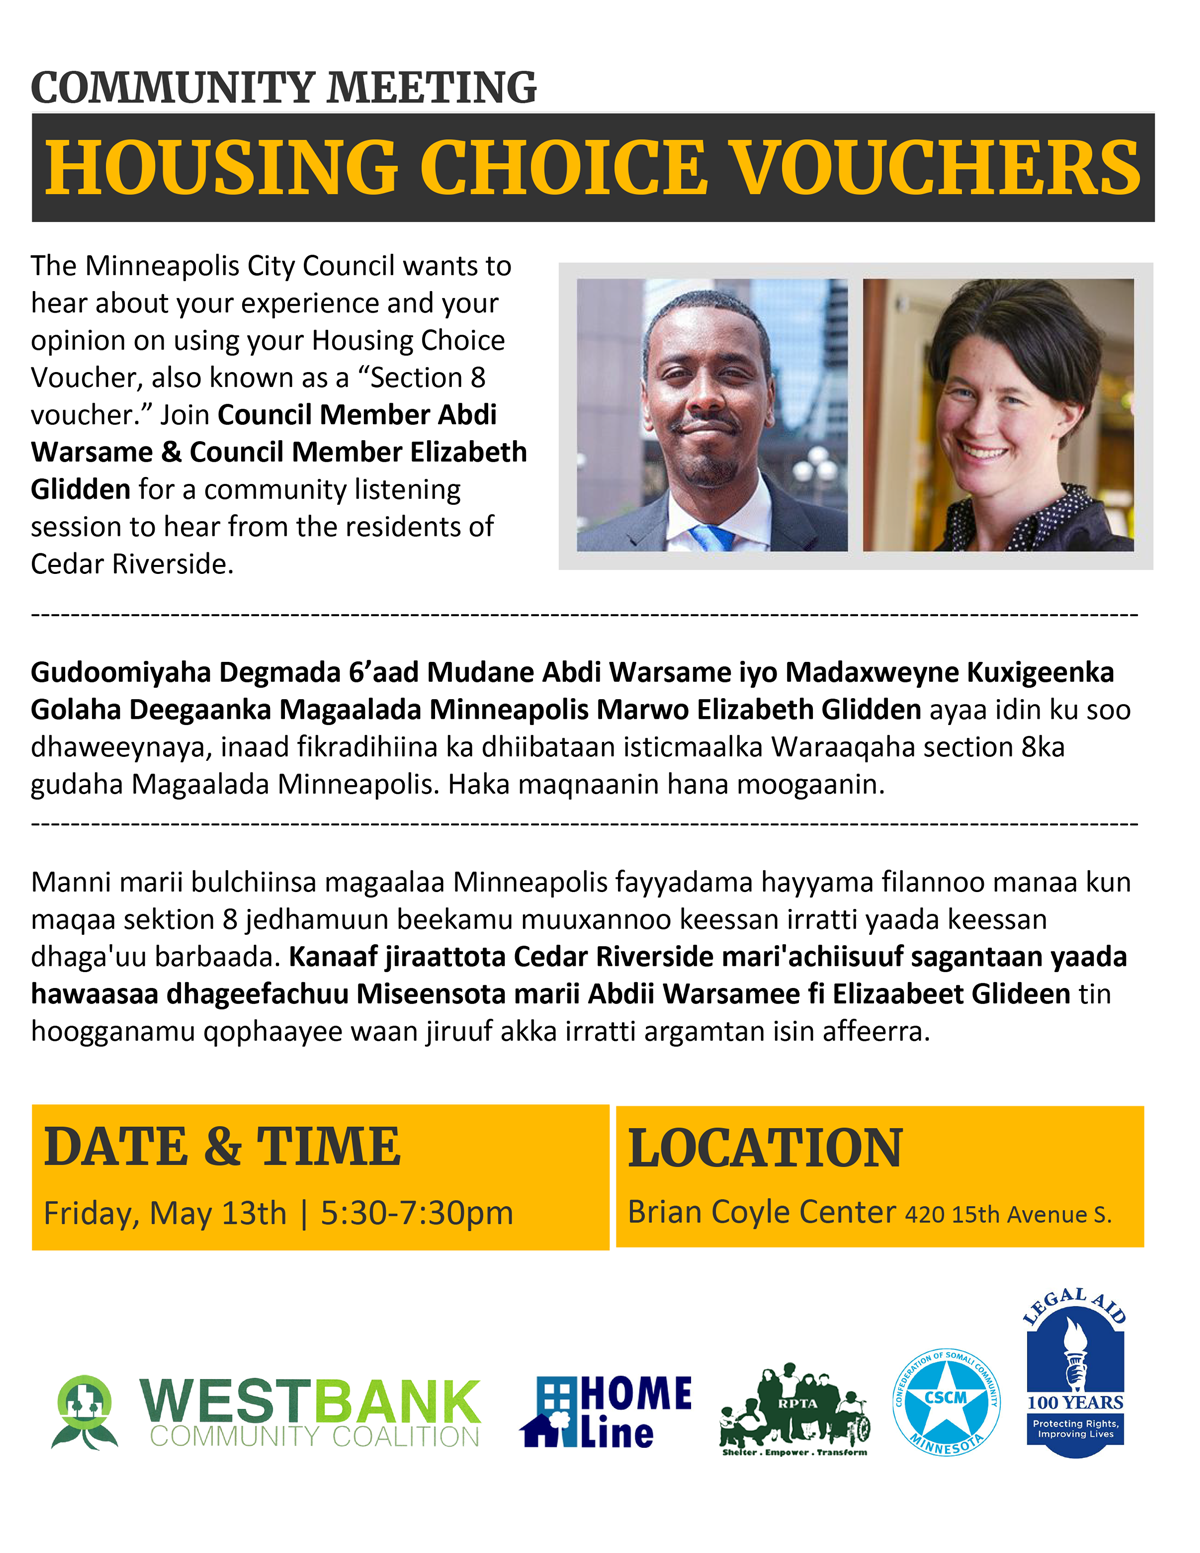 Housing Choice Vouchers Listening Session